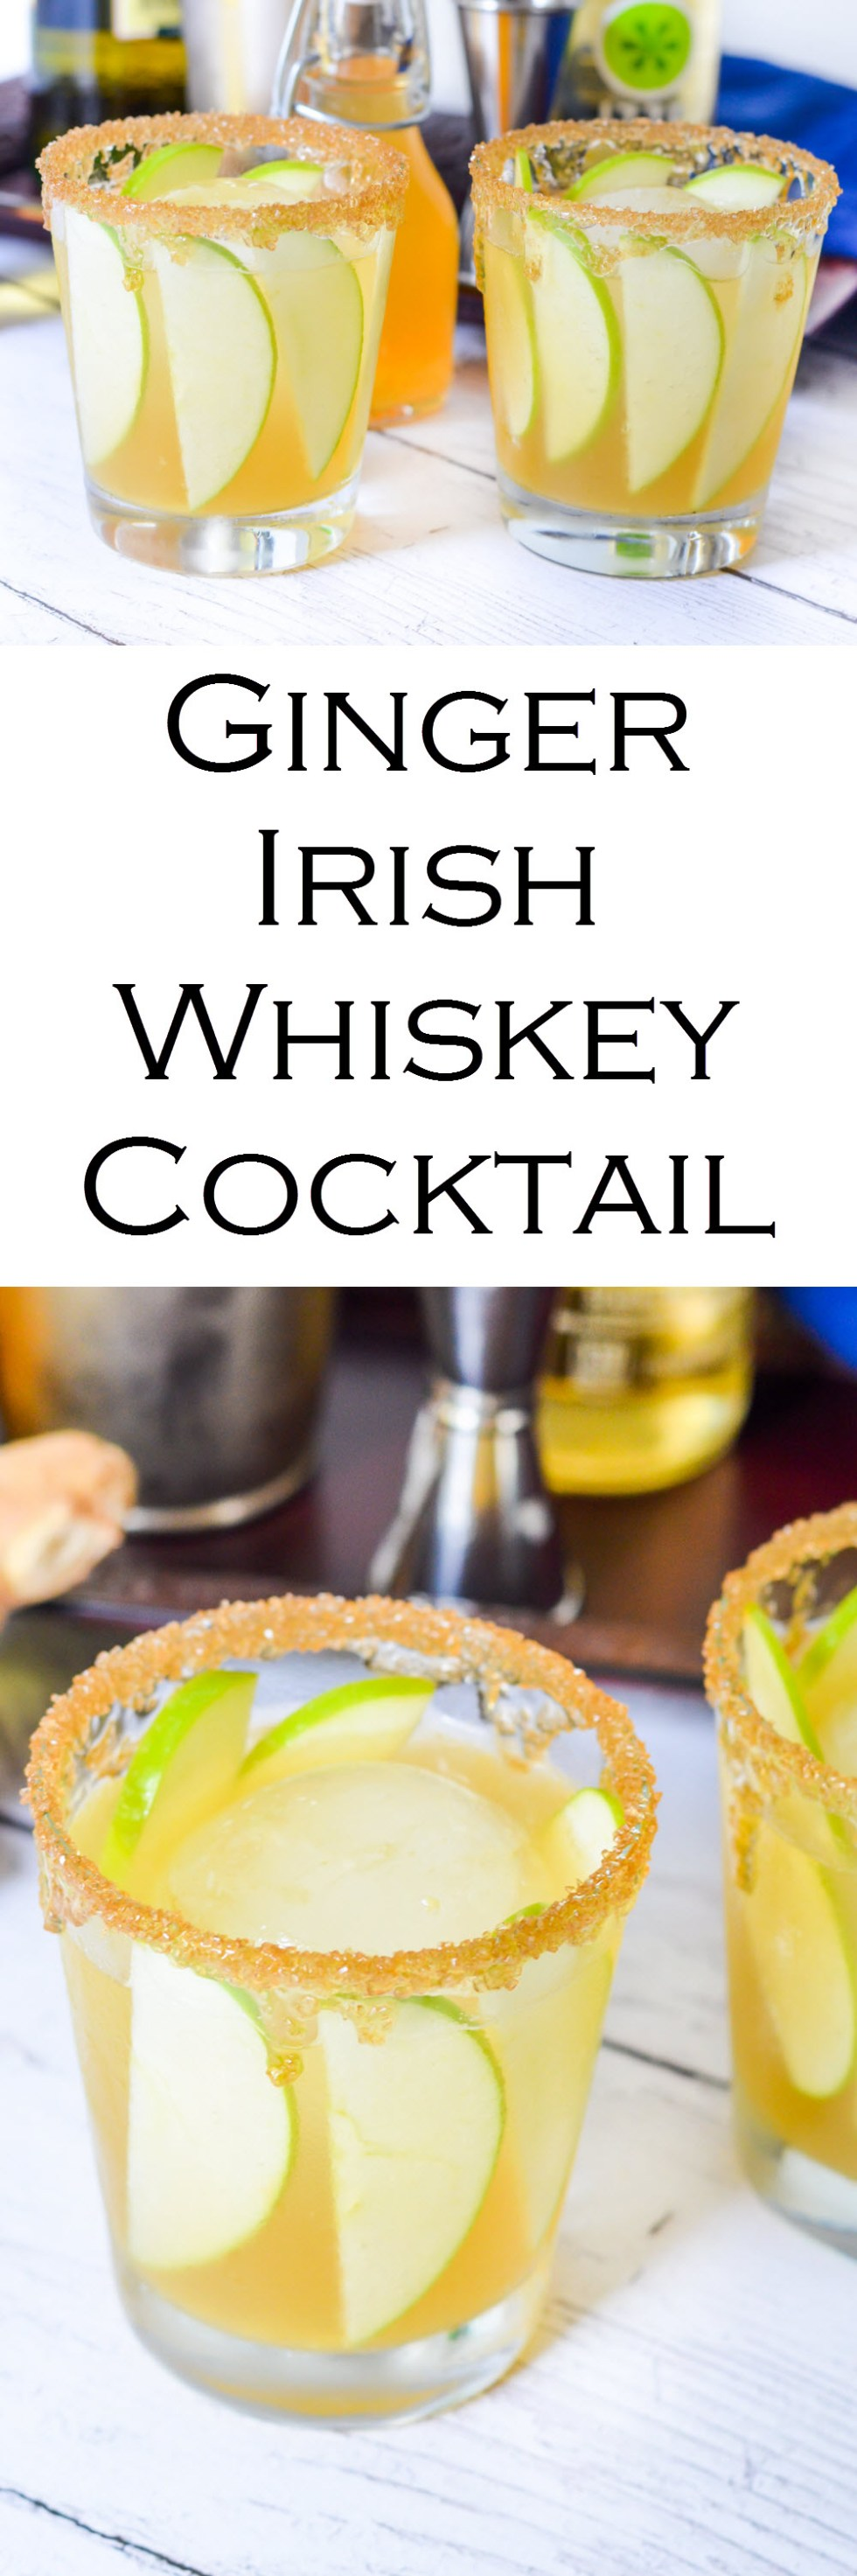 Irish Whiskey Ginger Cocktail Recipe IZZE Sparkling AppleEasy Fall, Winter drink and a perfect St. Patrick's Day Cocktail. #LMrecipes #cocktail #whiskey #whisky #bourbon #cocktailrecipe #mixology #bartender #stpatricksday #stpaddysday #partytime #apples #foodblog #foodblogger